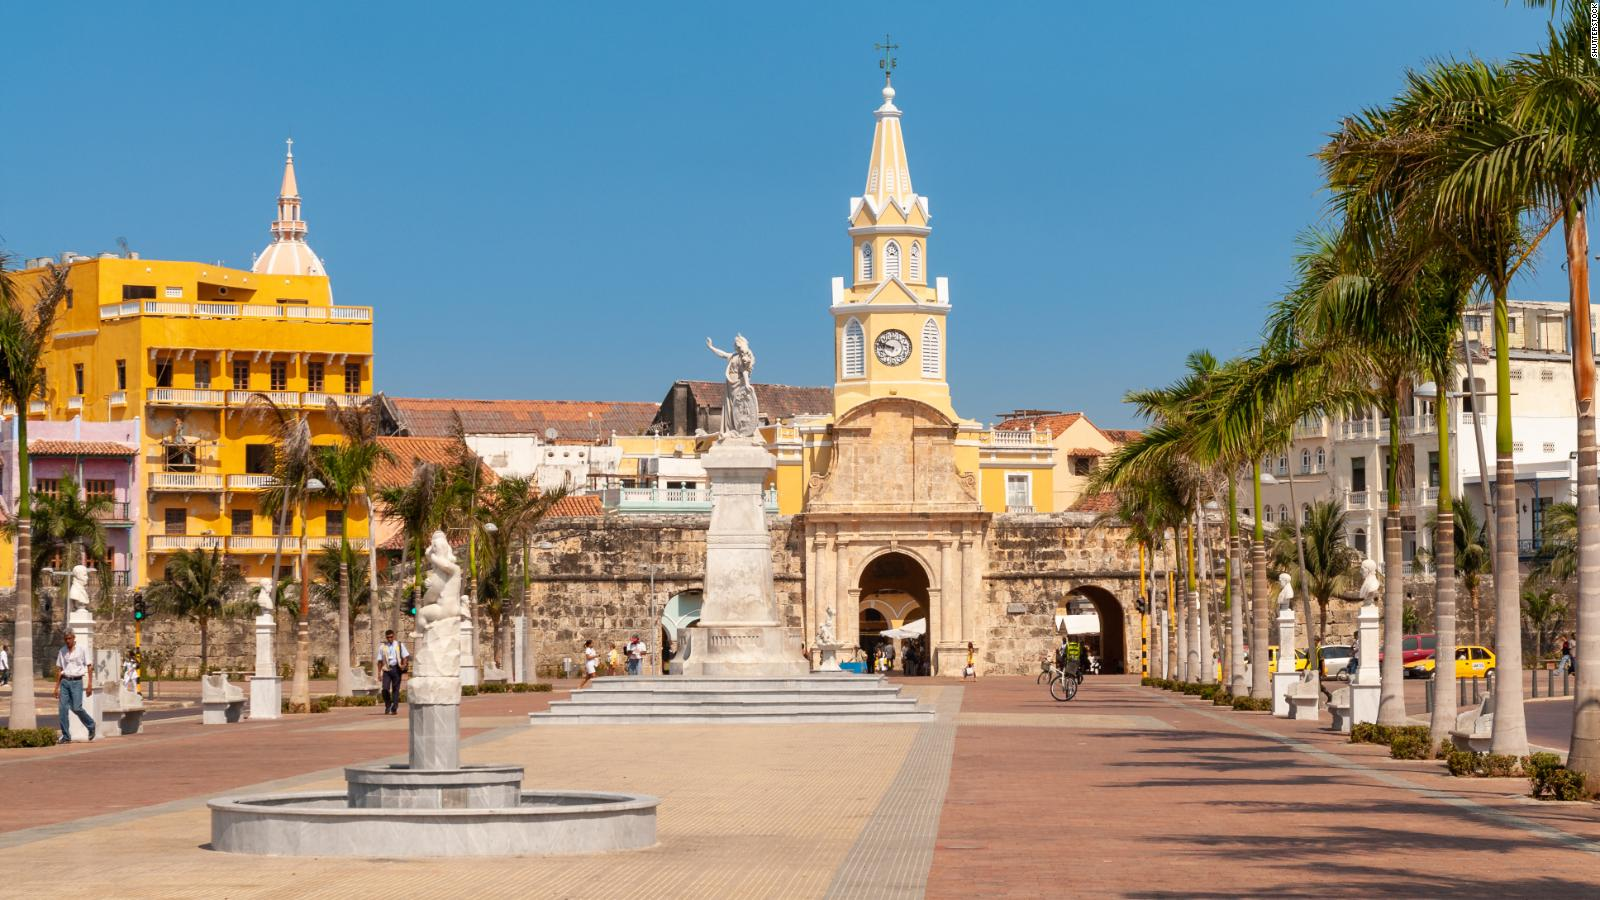 Top Attractions and Things to do in Cartagena?